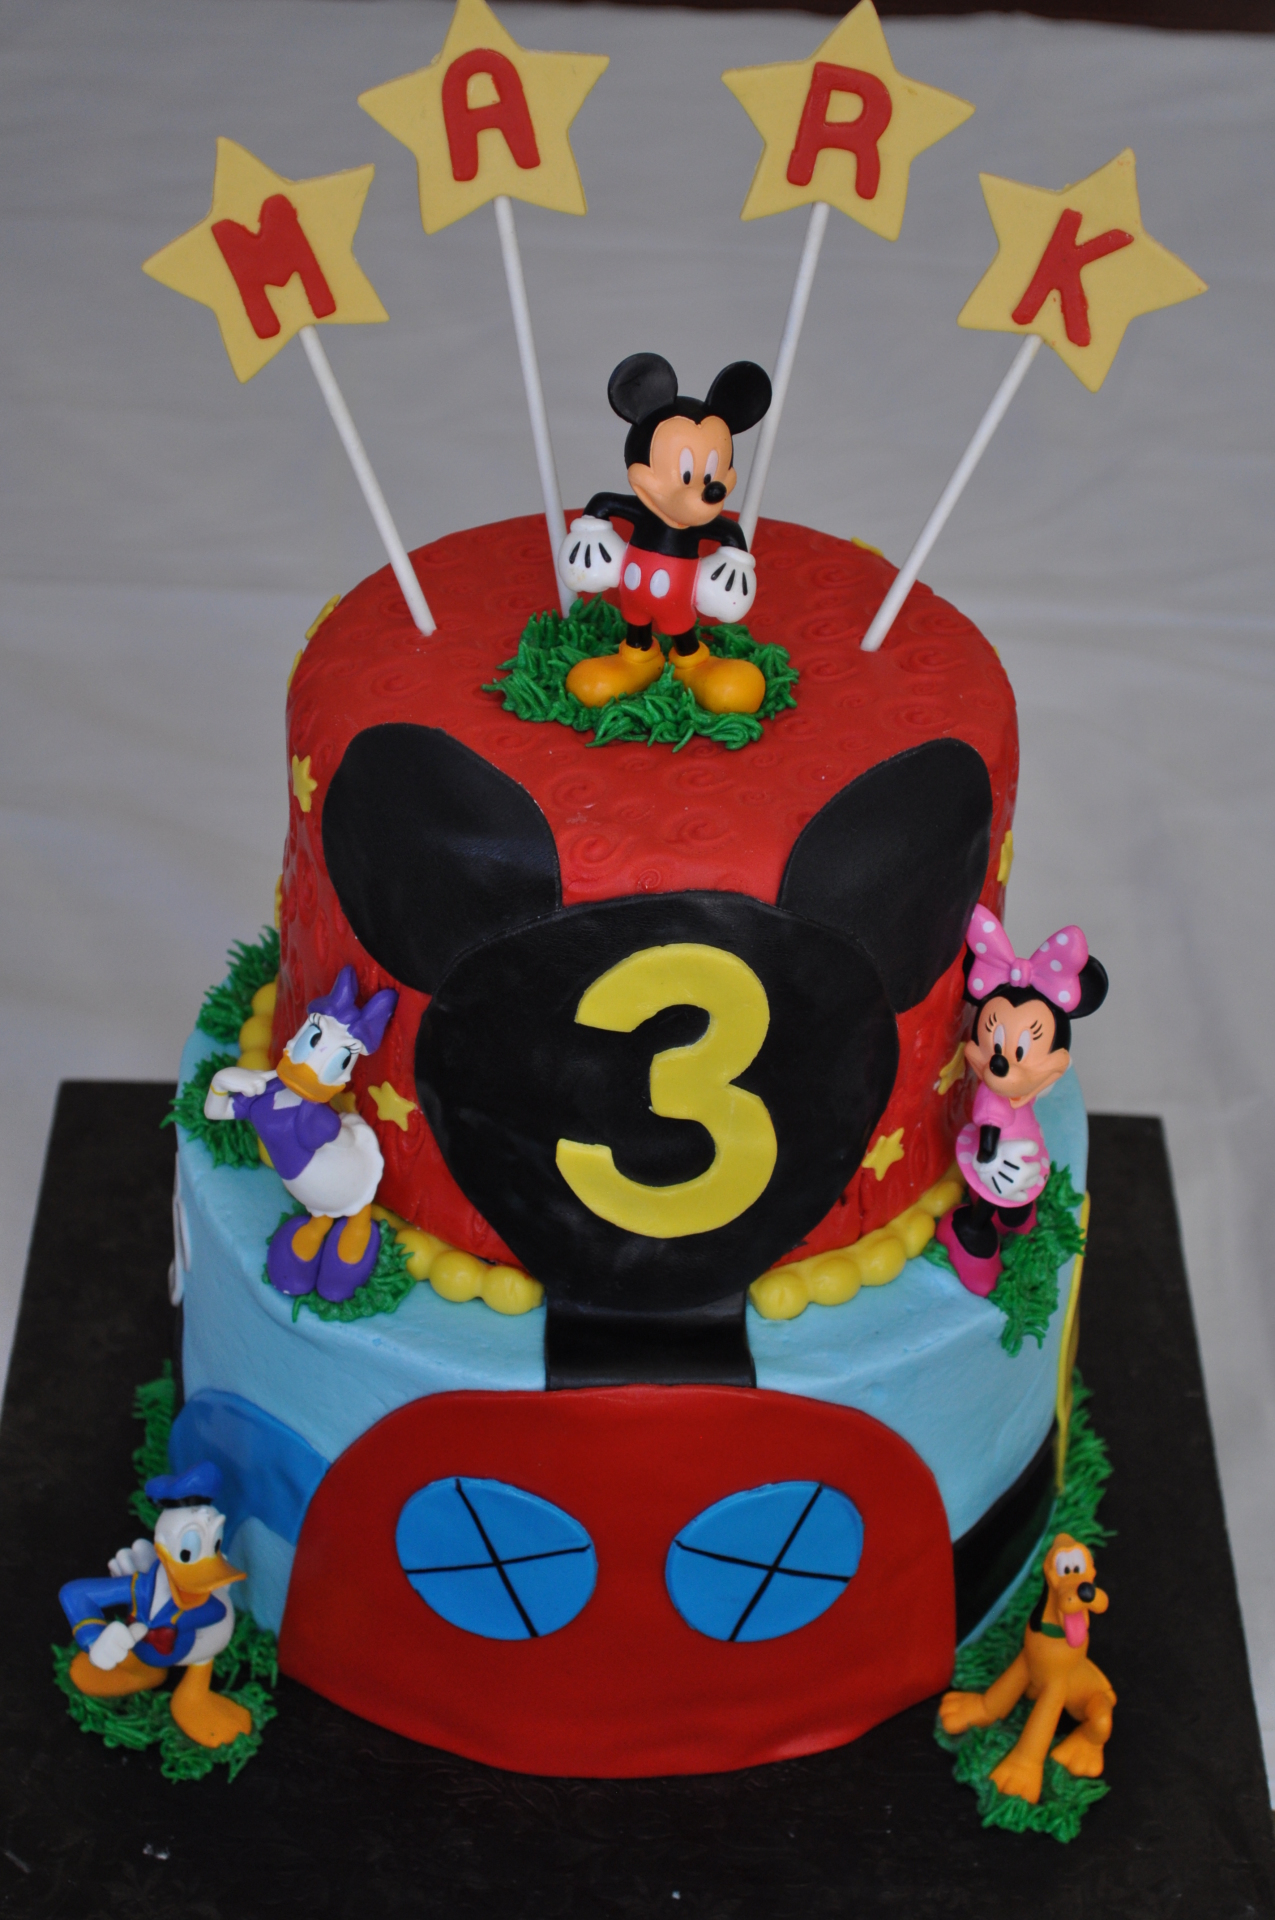 Disney's Mickey Mouse Clubhouse cake